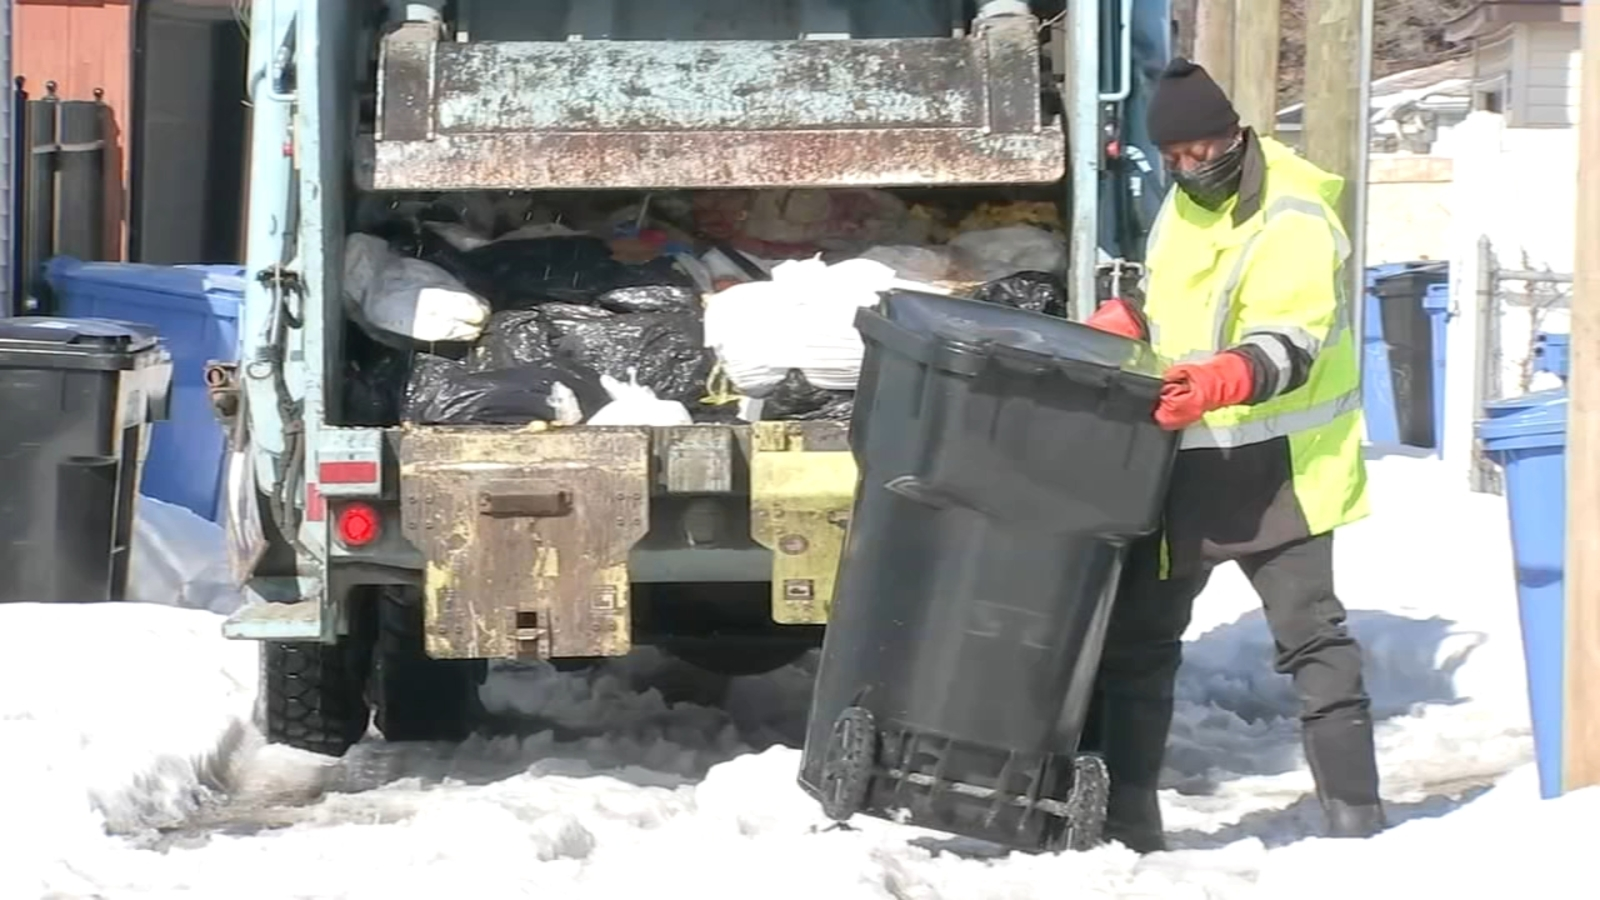 No garbage pickup for some Washington Heights residents for 2 weeks after snow